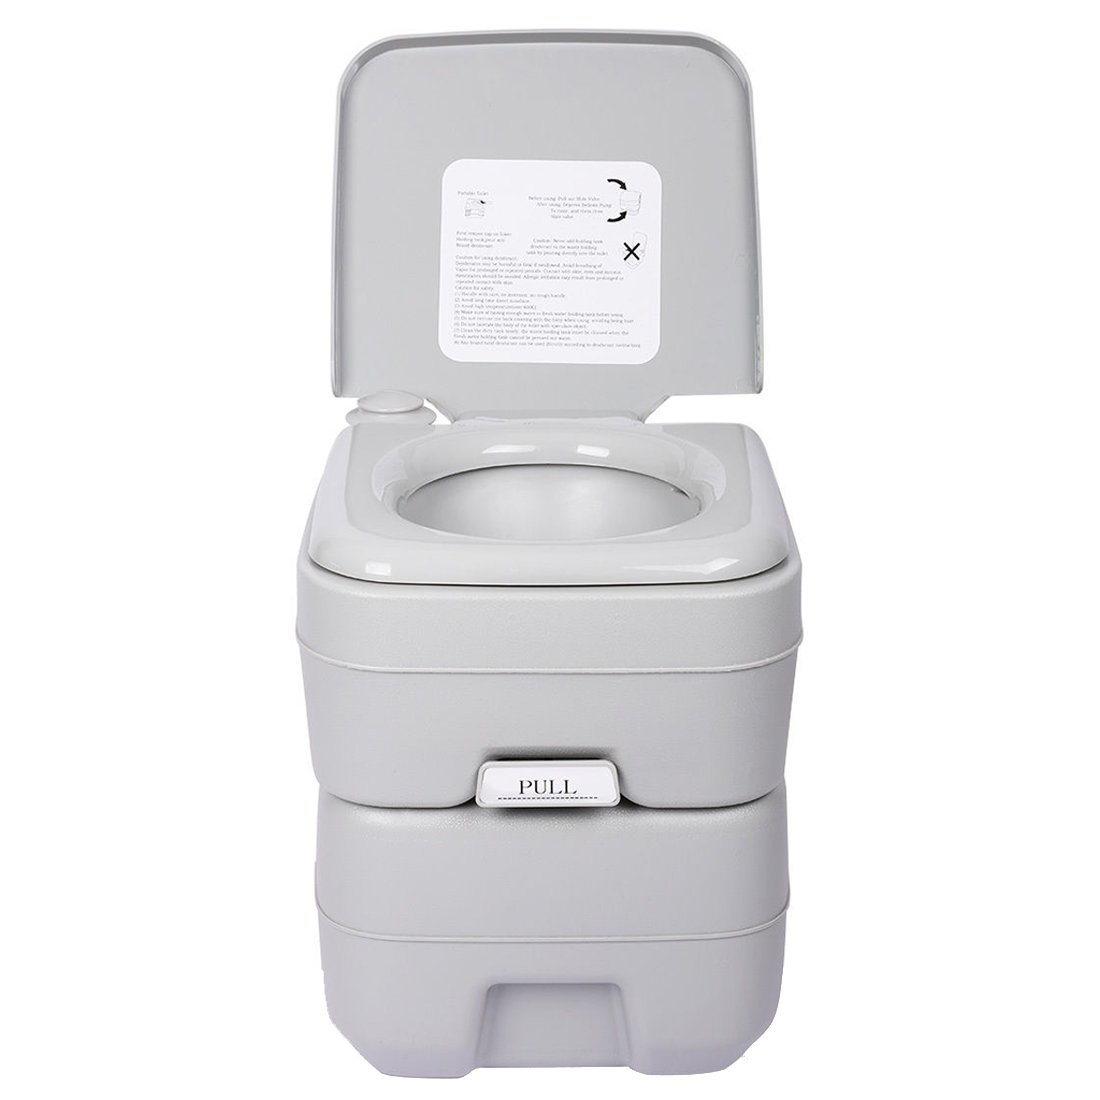 5 Gallon 20L Portable WC Toilet - TOOGOO(R) 5 Gallon 20L Portable WC Toilet Flush Camping Porta Travel Outdoor Hiking Potty by TOOGOO(R) (Image #3)